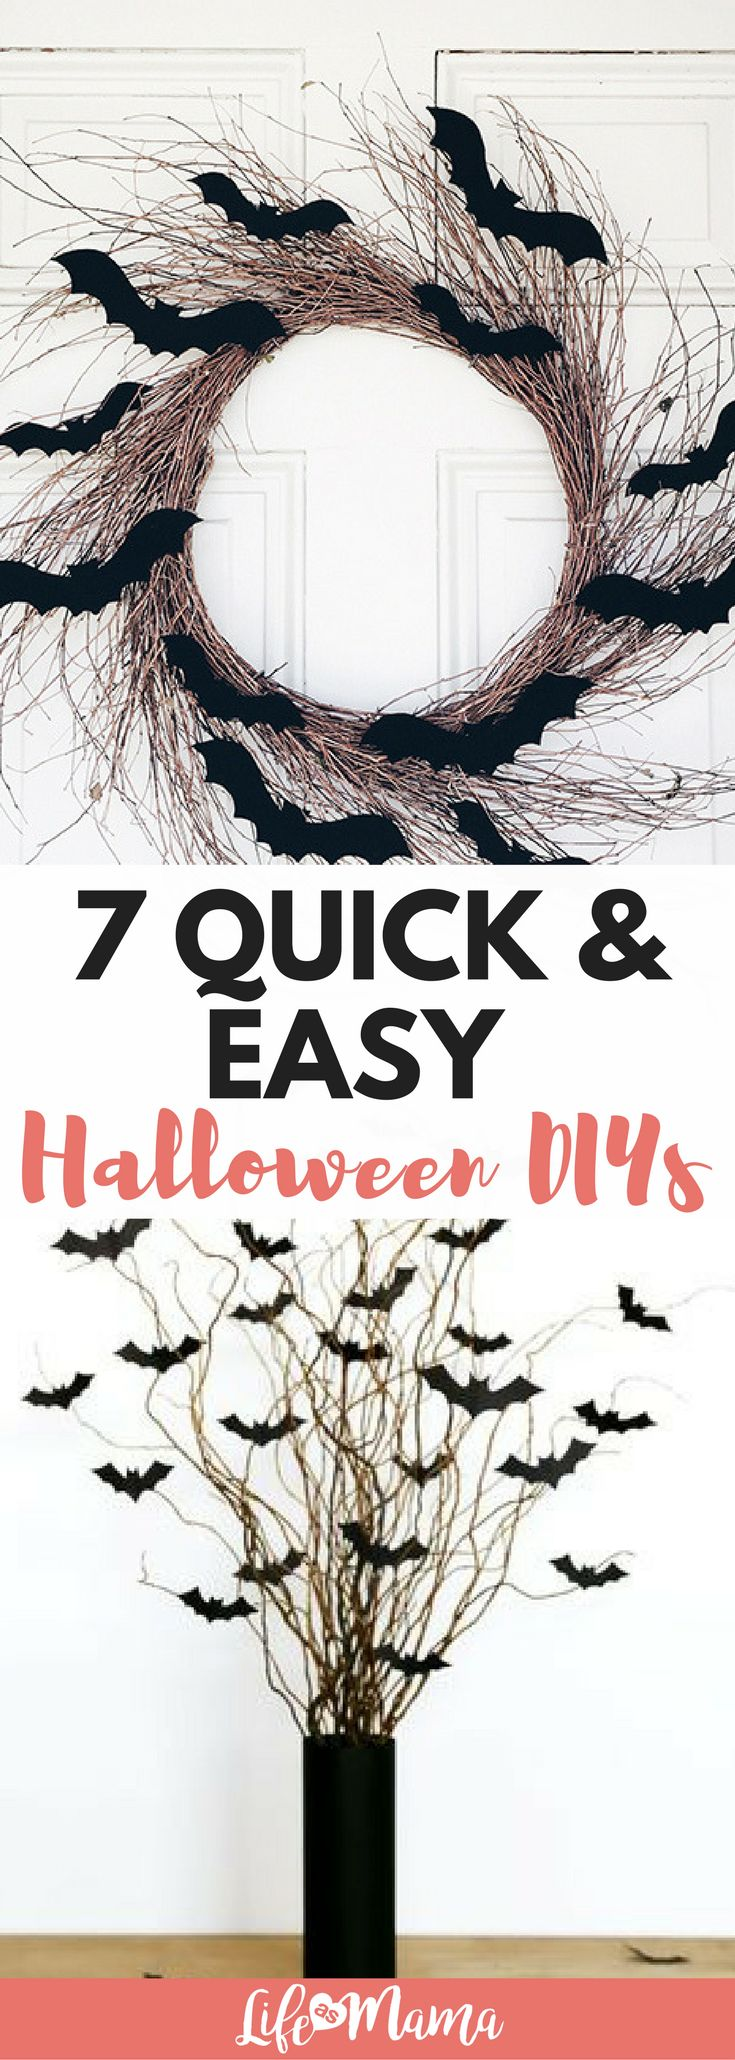 Halloween DIY's are here! I've found some fun ways to decorate to get you in the Halloween spirit.